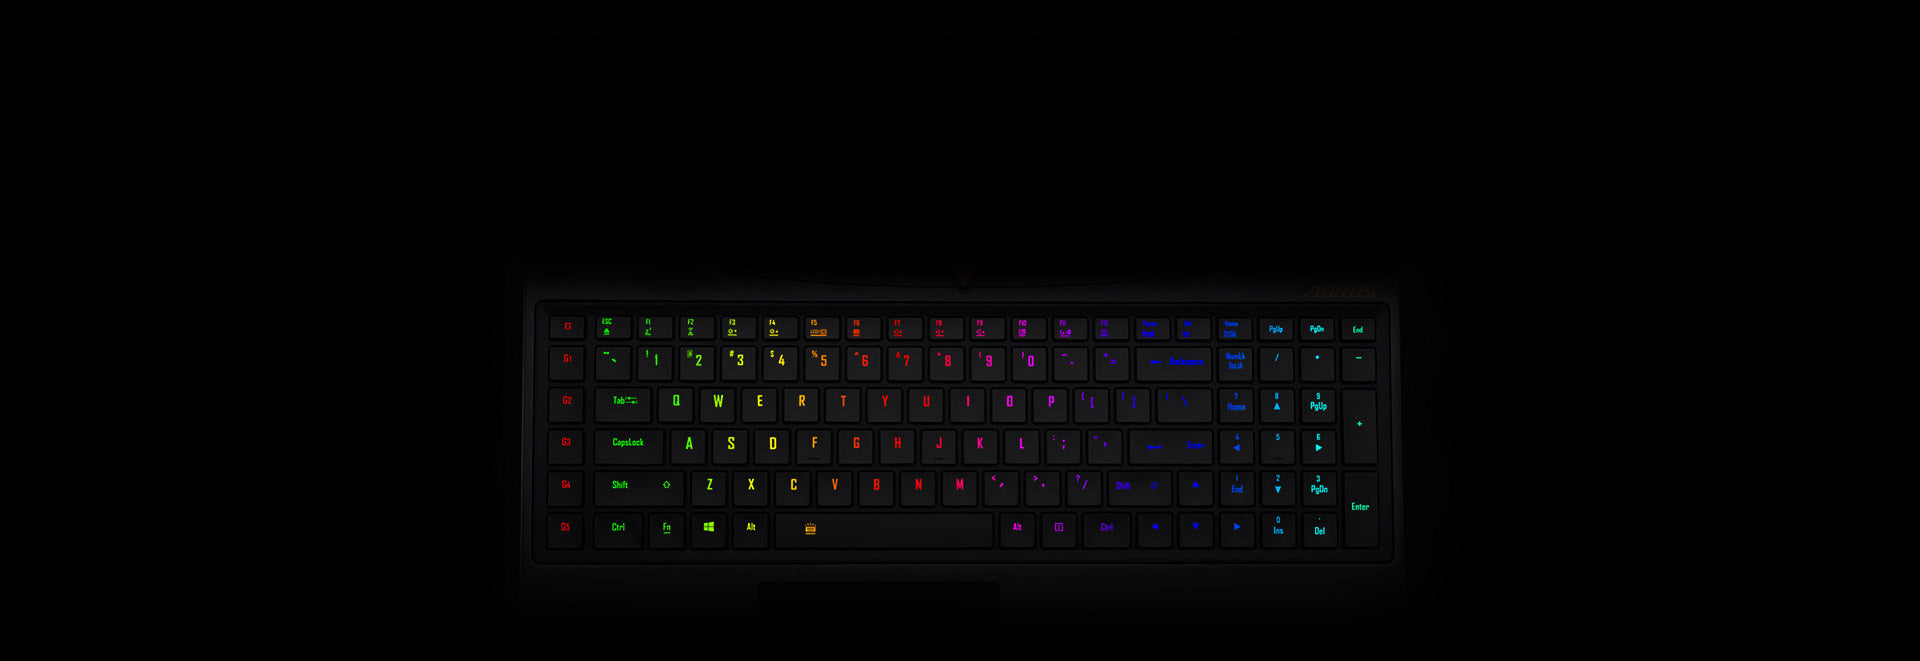 AORUS laptop full-color keyboard